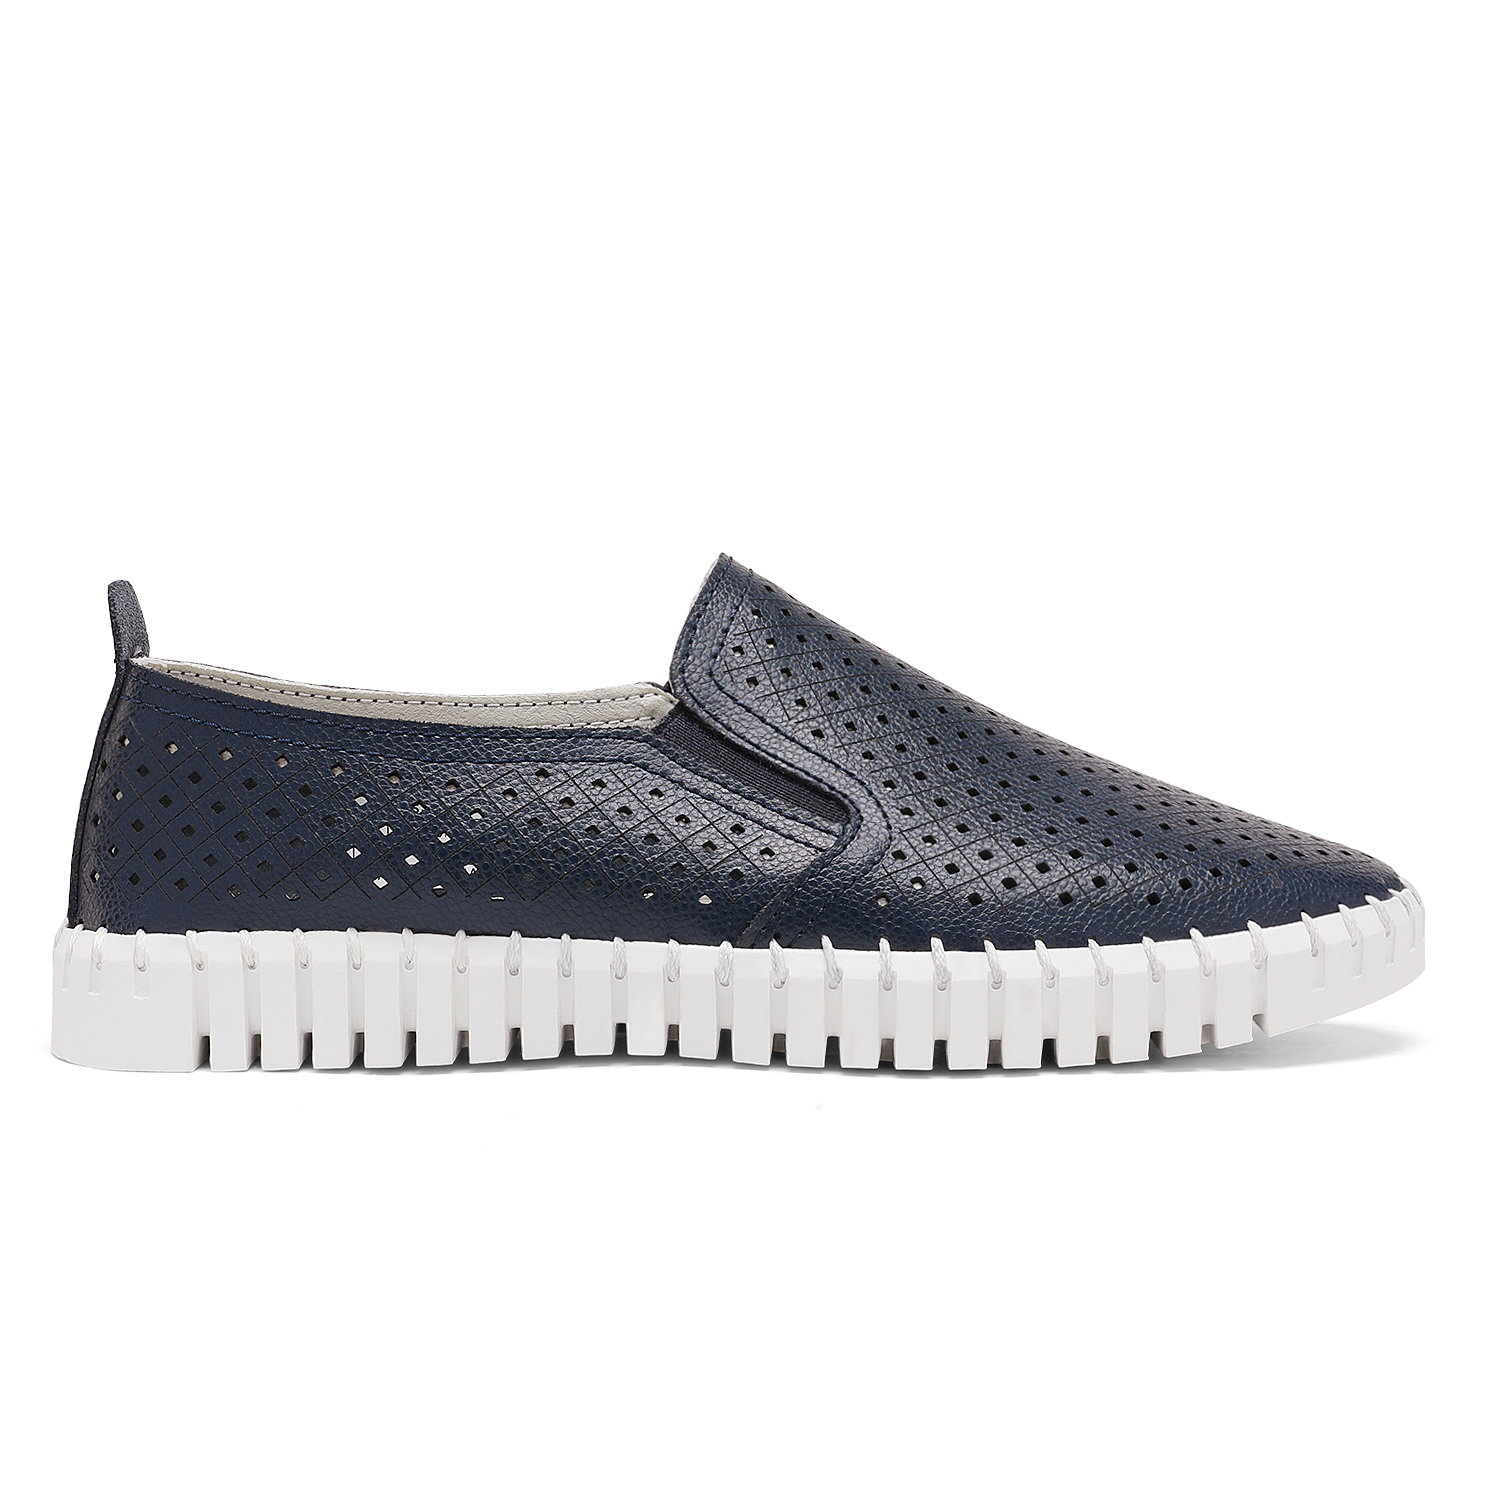 DREAM-PAIRS-Women-s-Breathable-Sneaker-Slip-On-Loafers-Comfortable-Flat-Shoes thumbnail 24